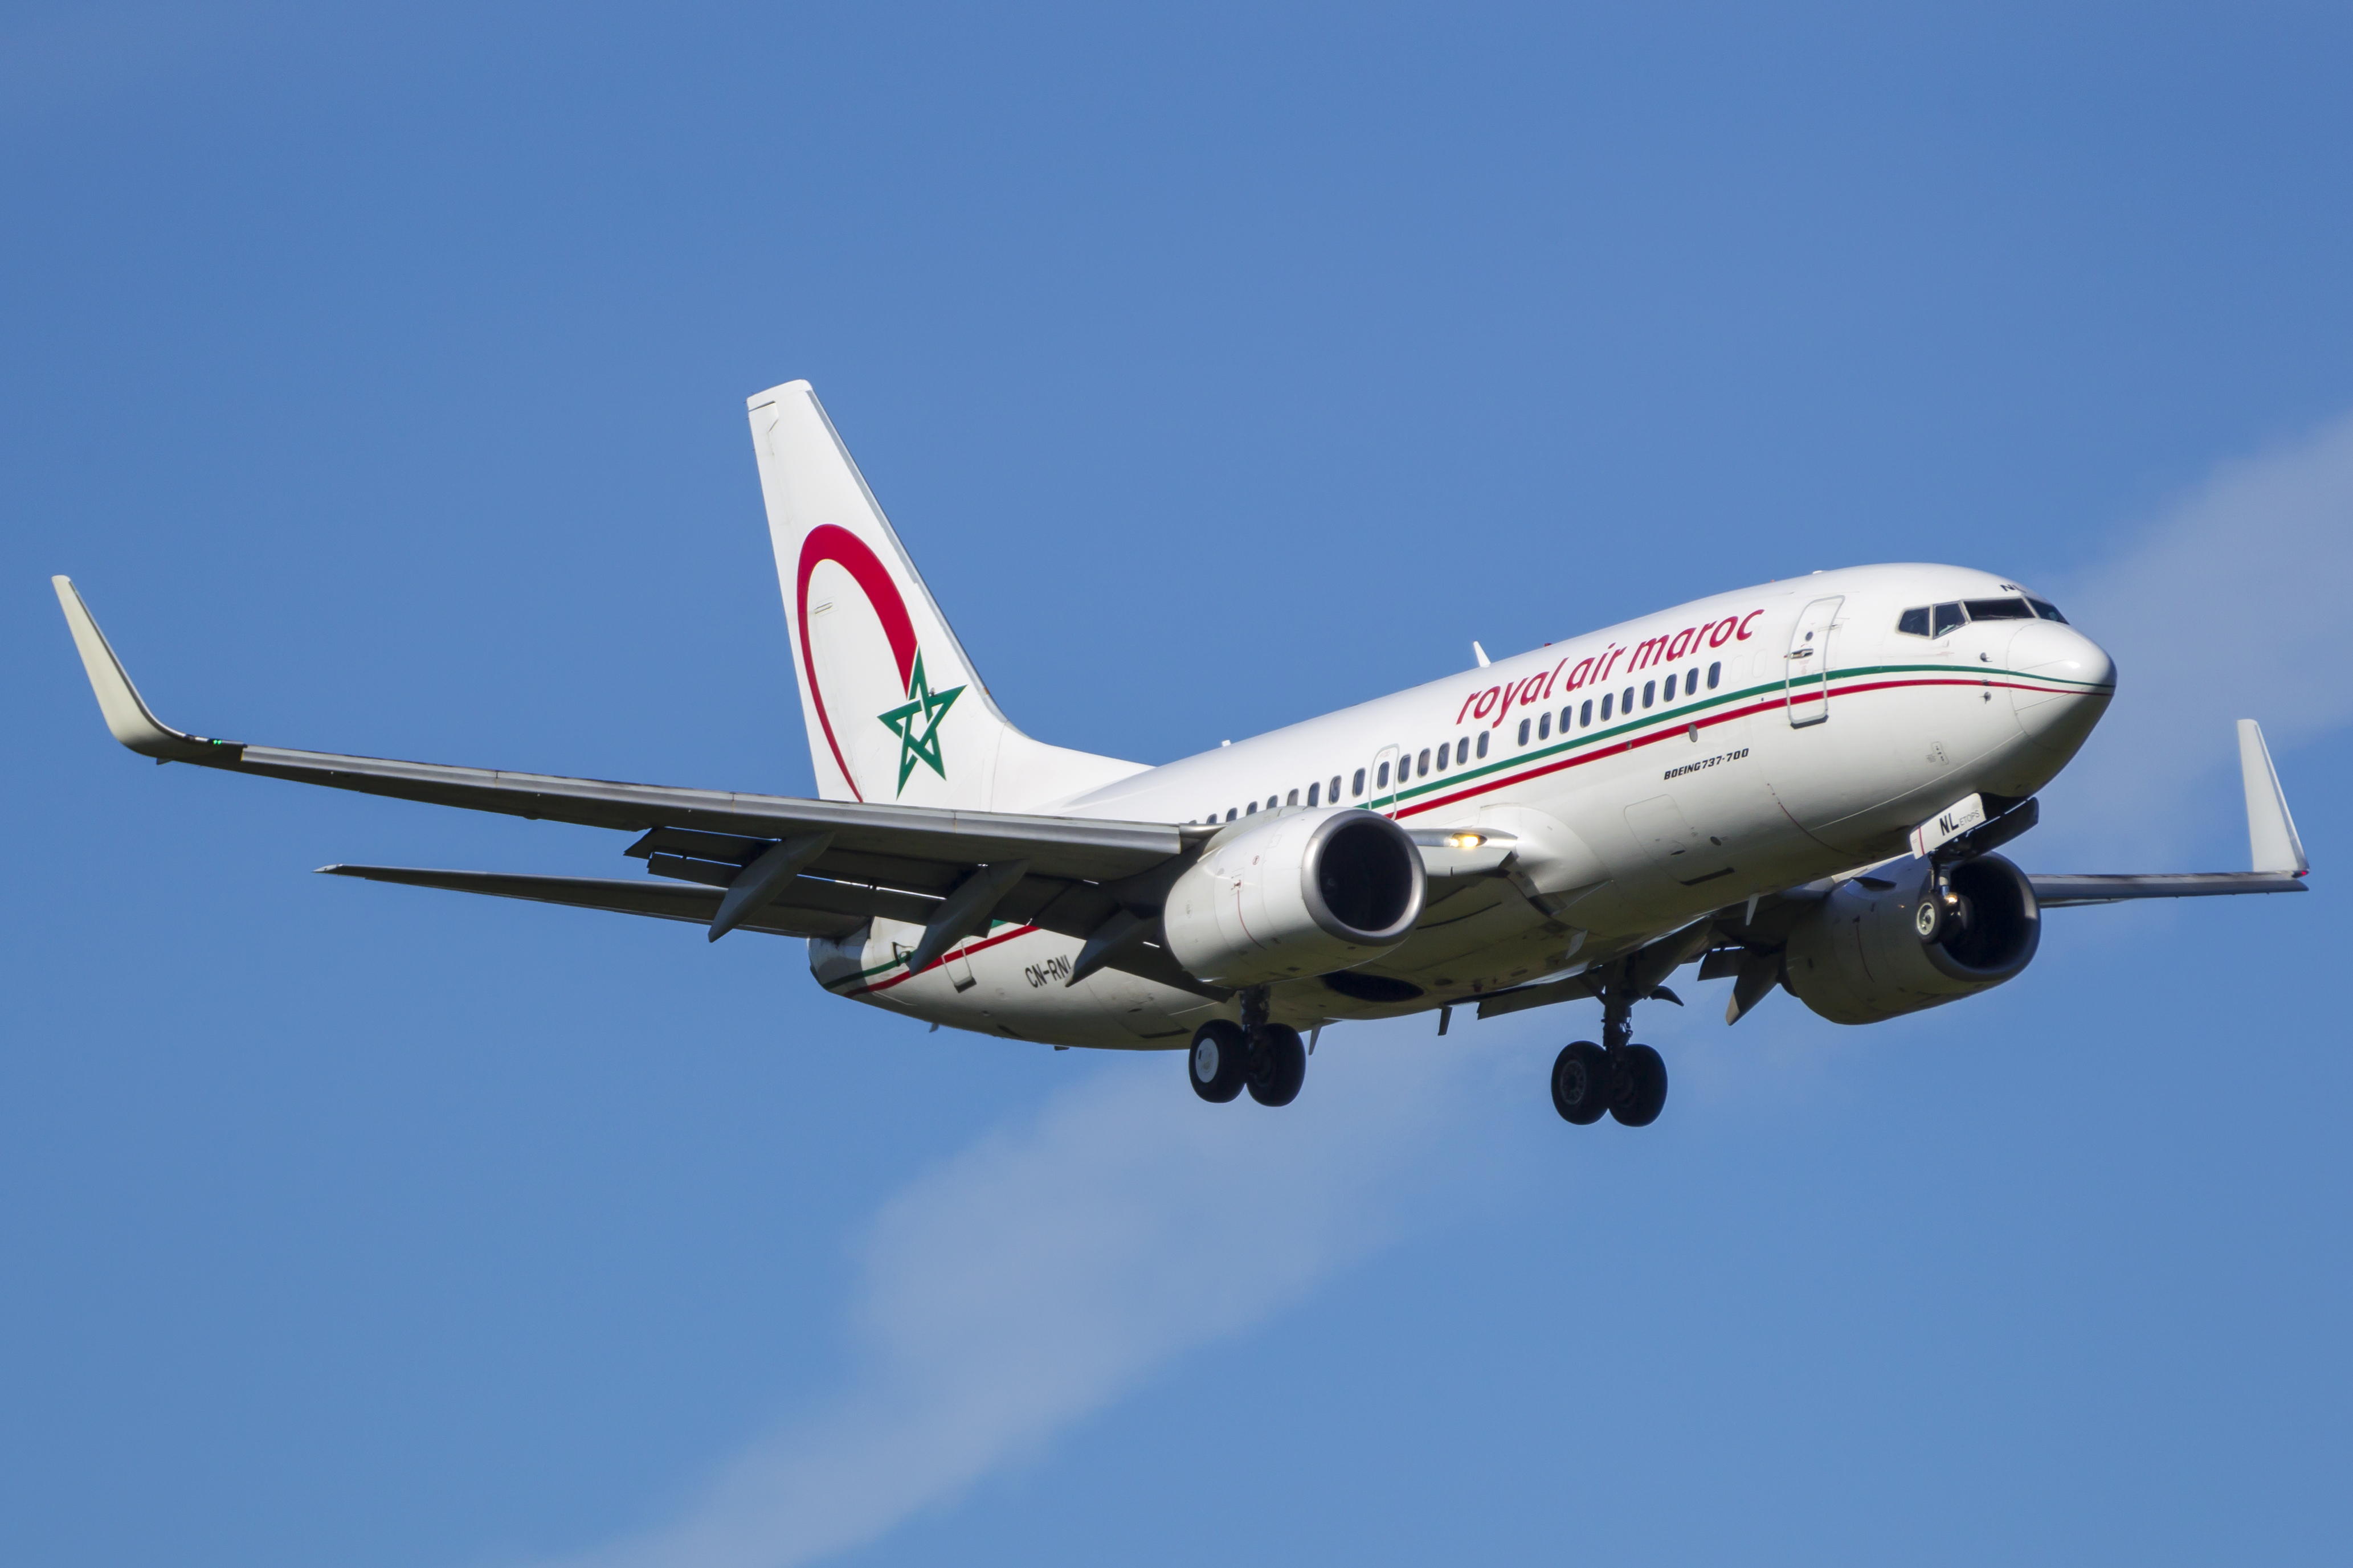 En Boeing 737-700 fra det marokkanske flyselskab Royal Air Maroc. Foto: © Thorbjørn Brunander Sund, Danish Aviation Photo